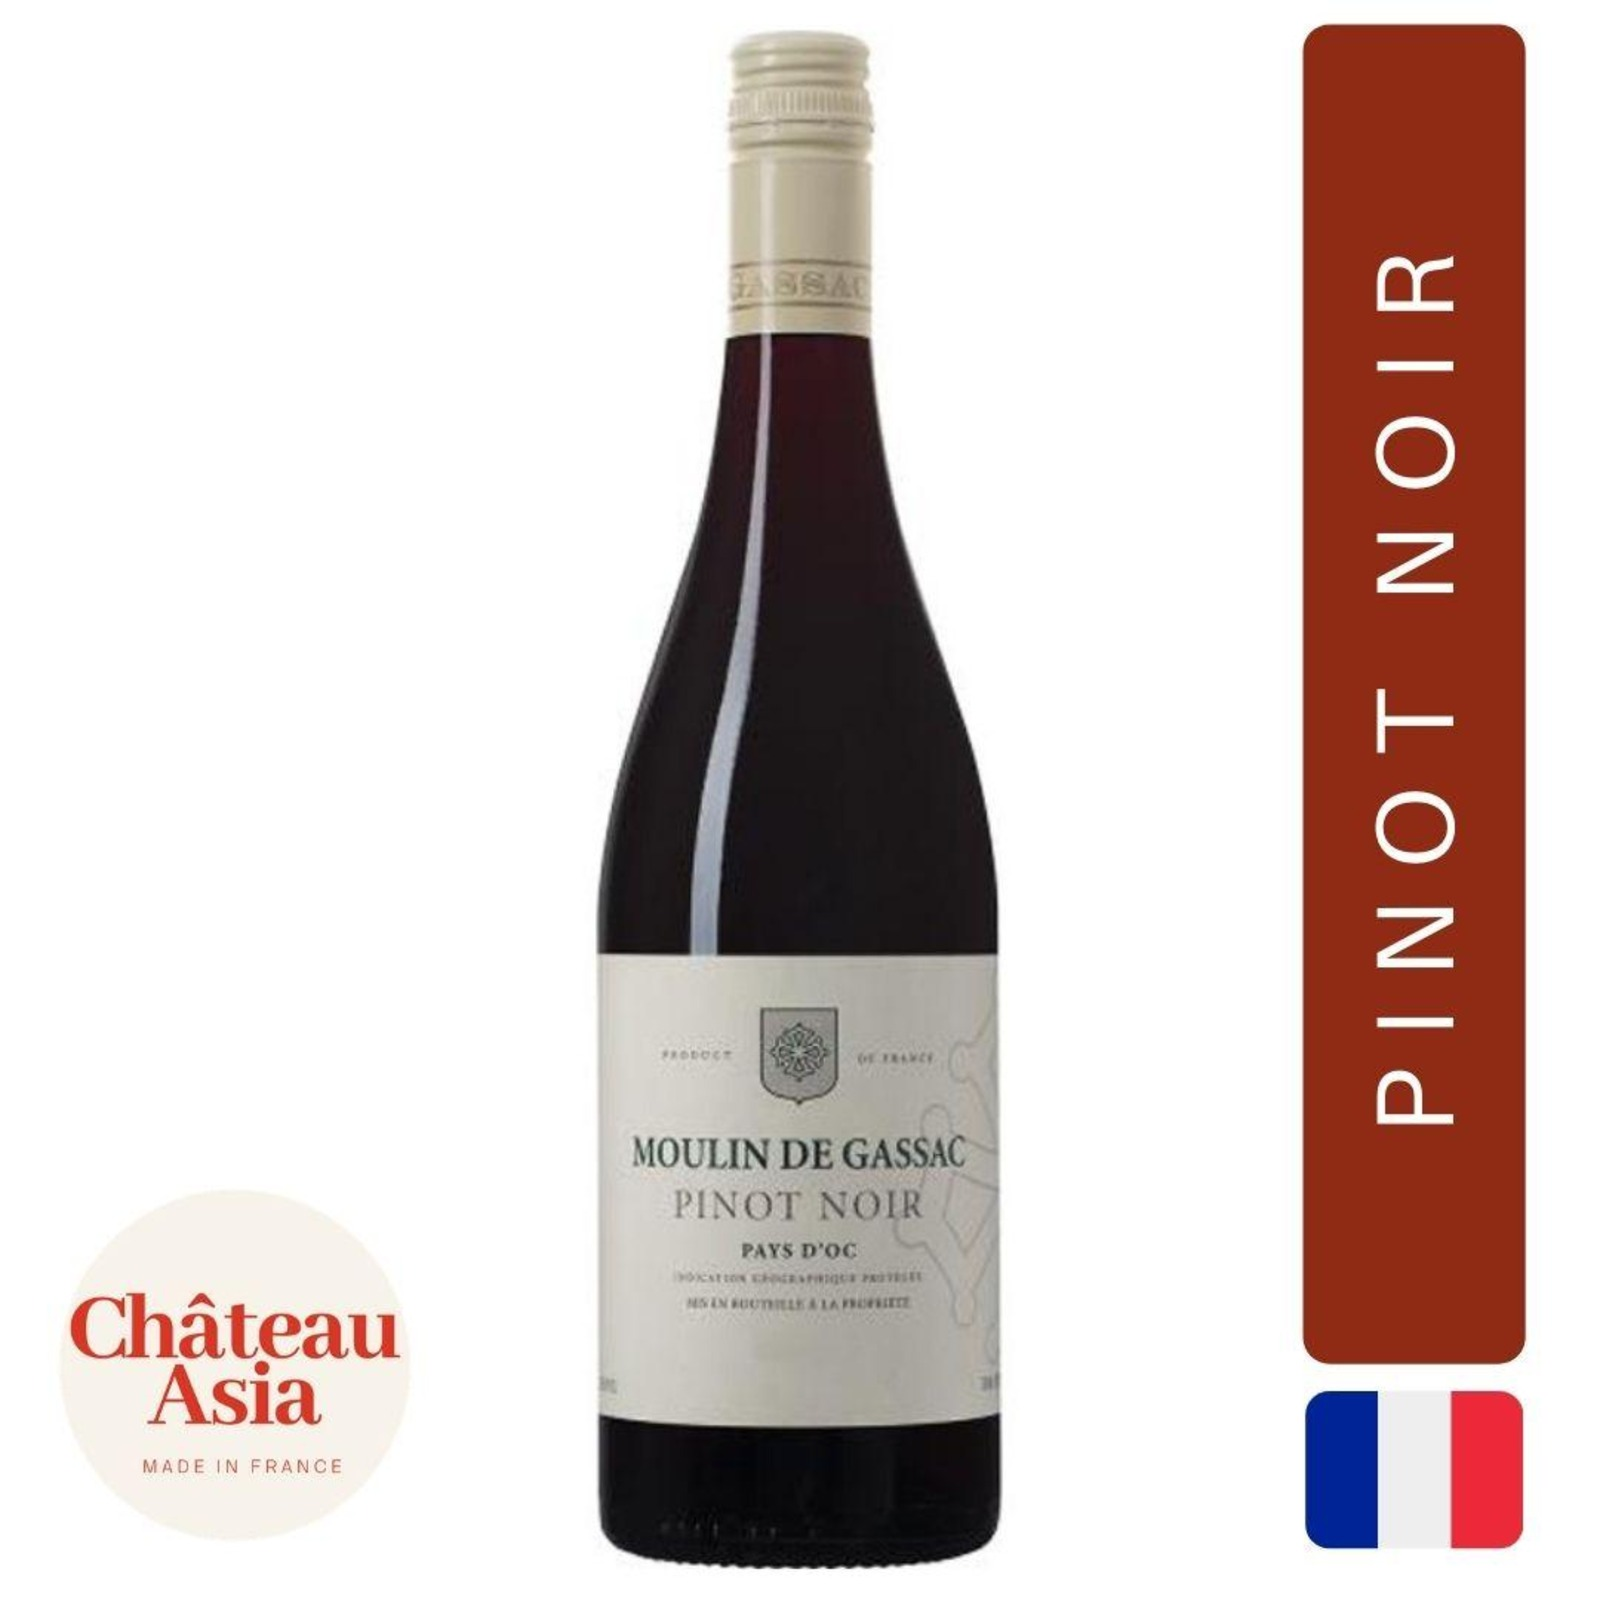 Moulin De Gassac - Pinot Noir - Red Wine